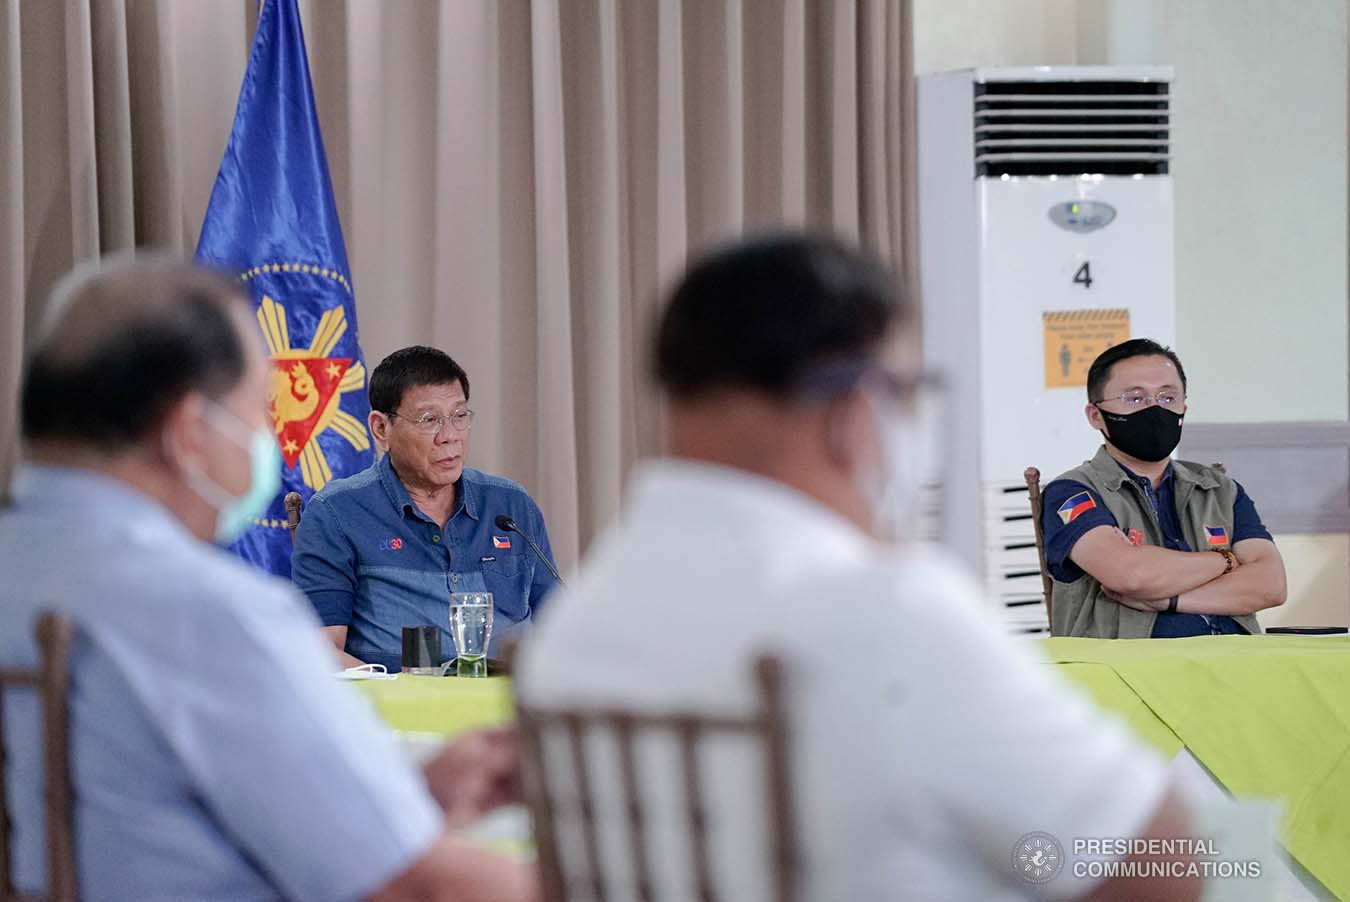 Duterte wants gov't work completed quicker: 'I'm a extremely impatient man'